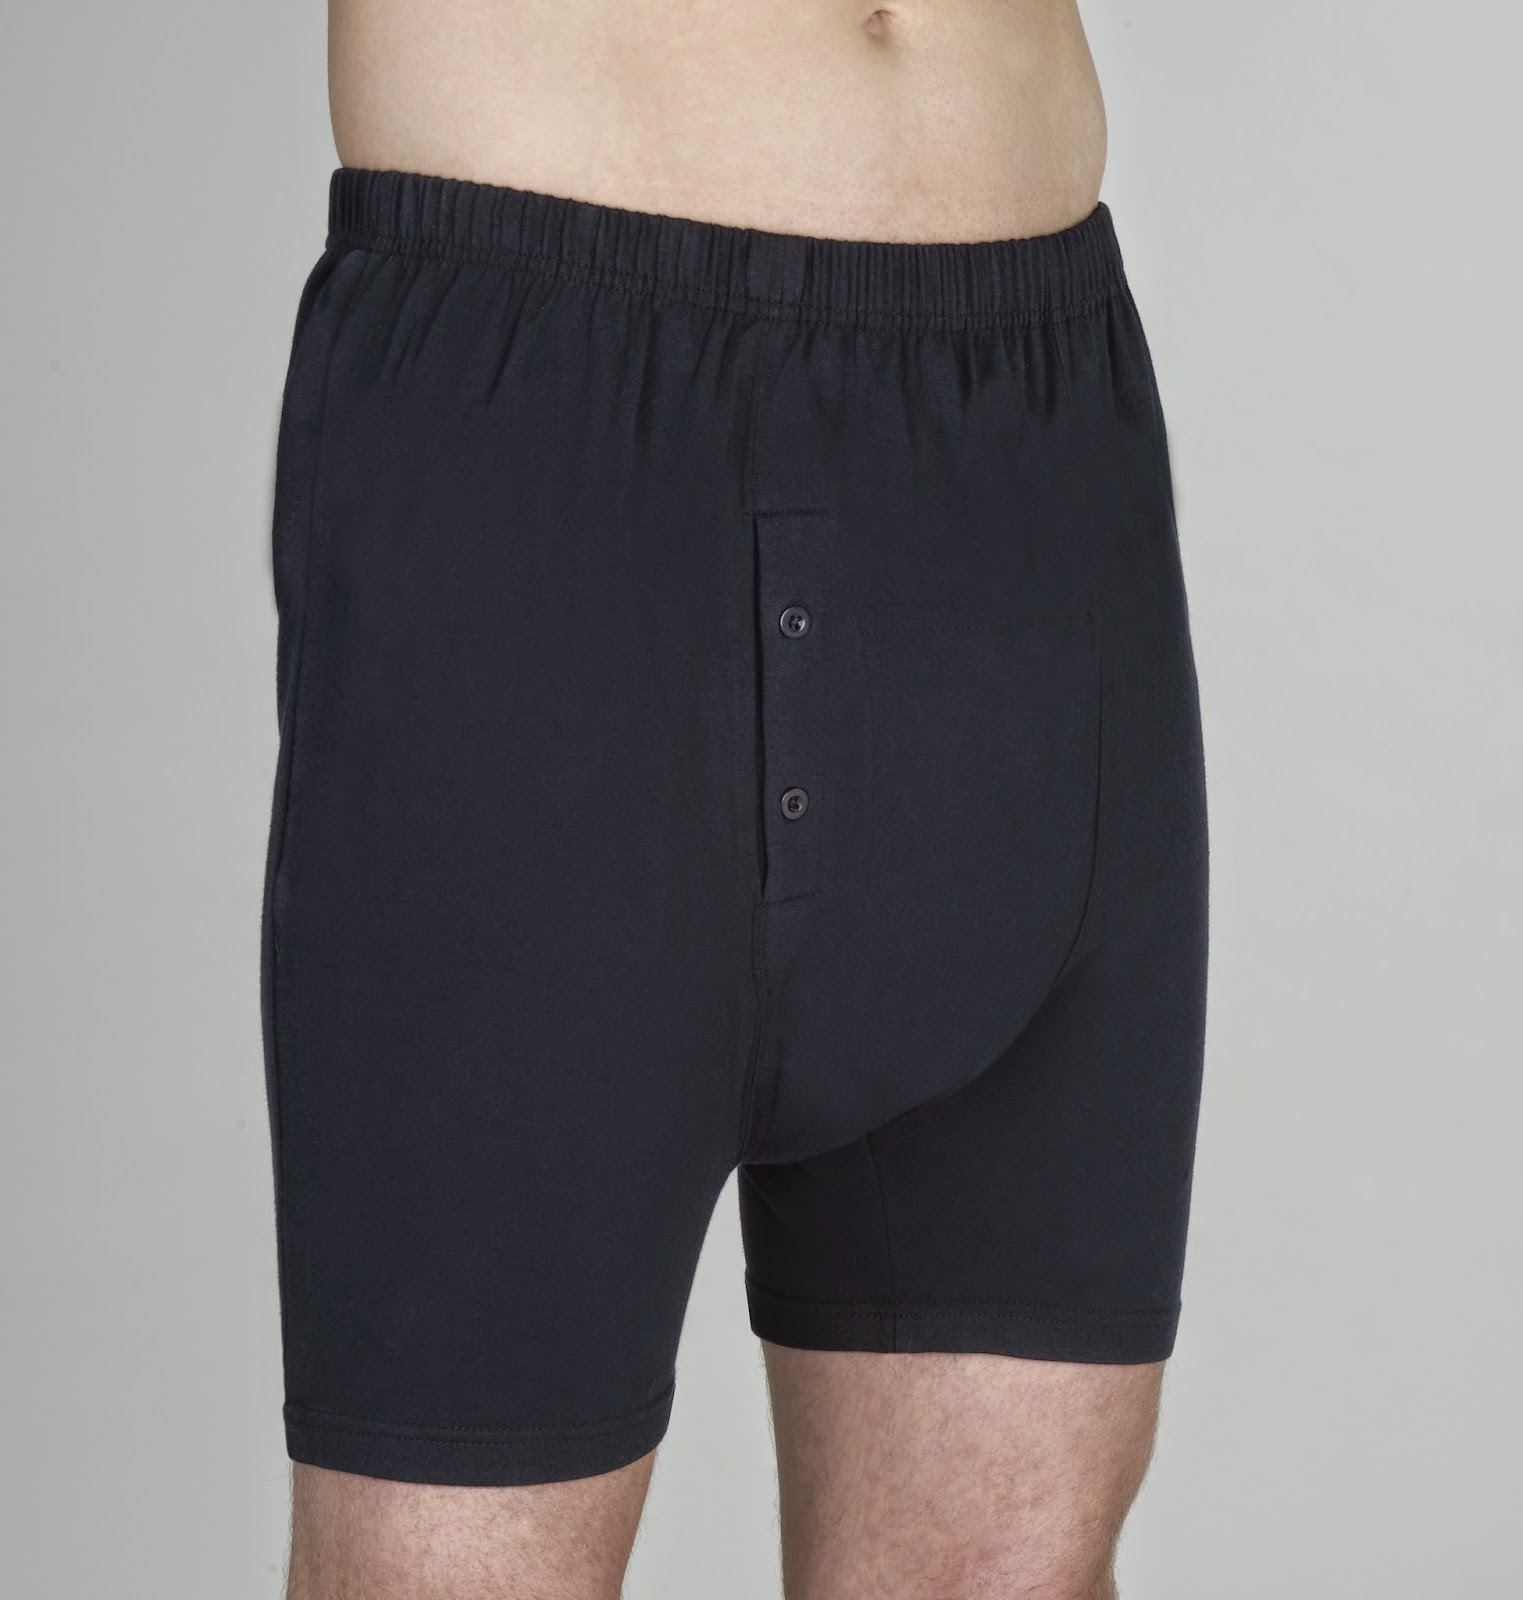 Oma Loves U!: Leak-Control Underwear for Men and Women of ...